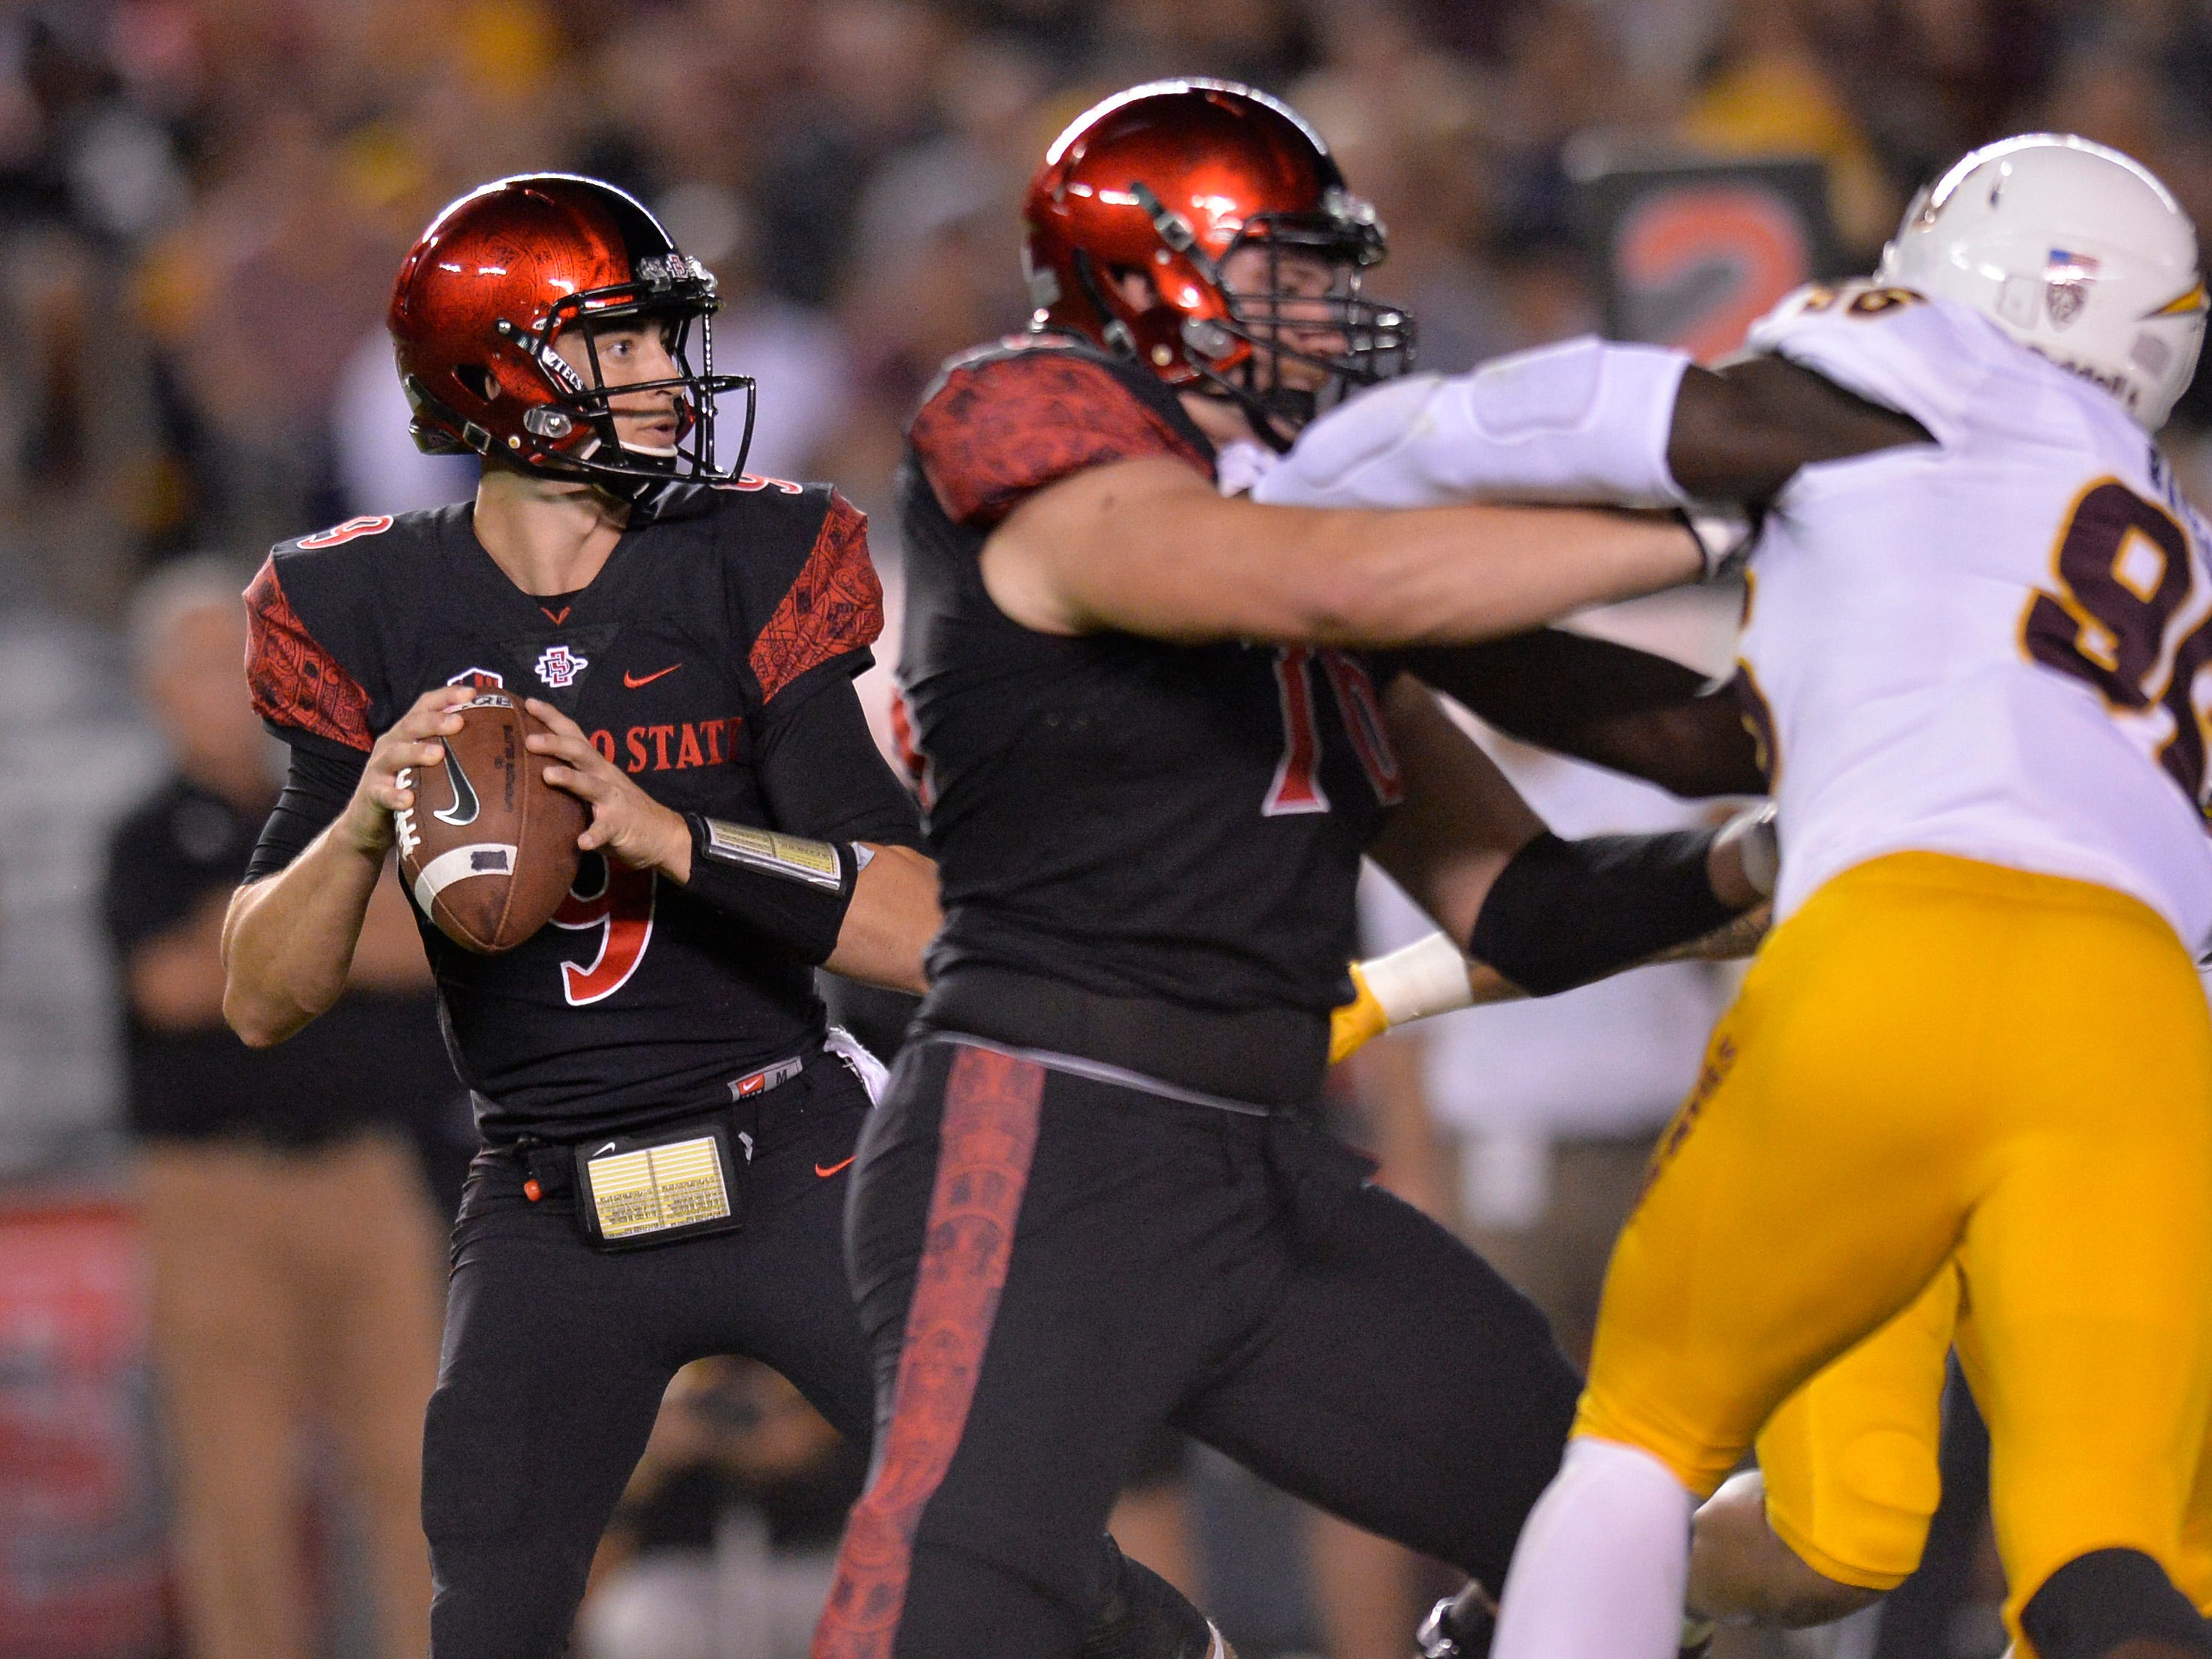 Sep 15, 2018; San Diego, CA, USA; San Diego State Aztecs quarterback Ryan Agnew (9) looks to pass during the first quarter against the Arizona State Sun Devils at SDCCU Stadium. Mandatory Credit: Jake Roth-USA TODAY Sports